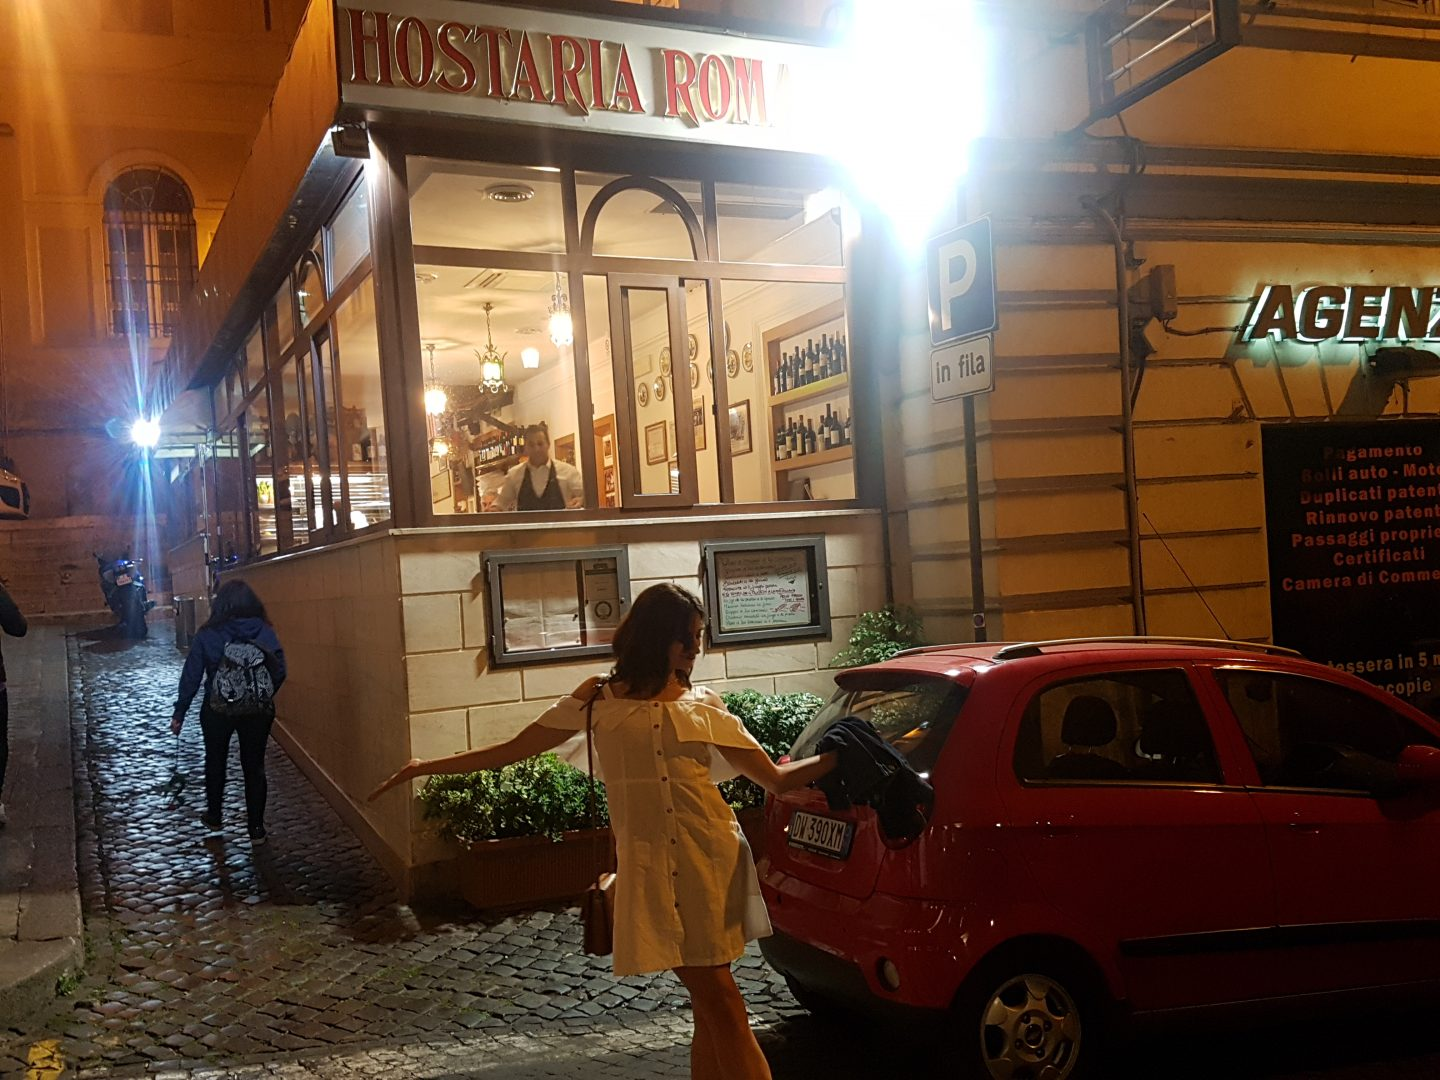 Restaurant Cucina Agen The Best Italian Restaurant In Rome Hostaria Romana Maketh The